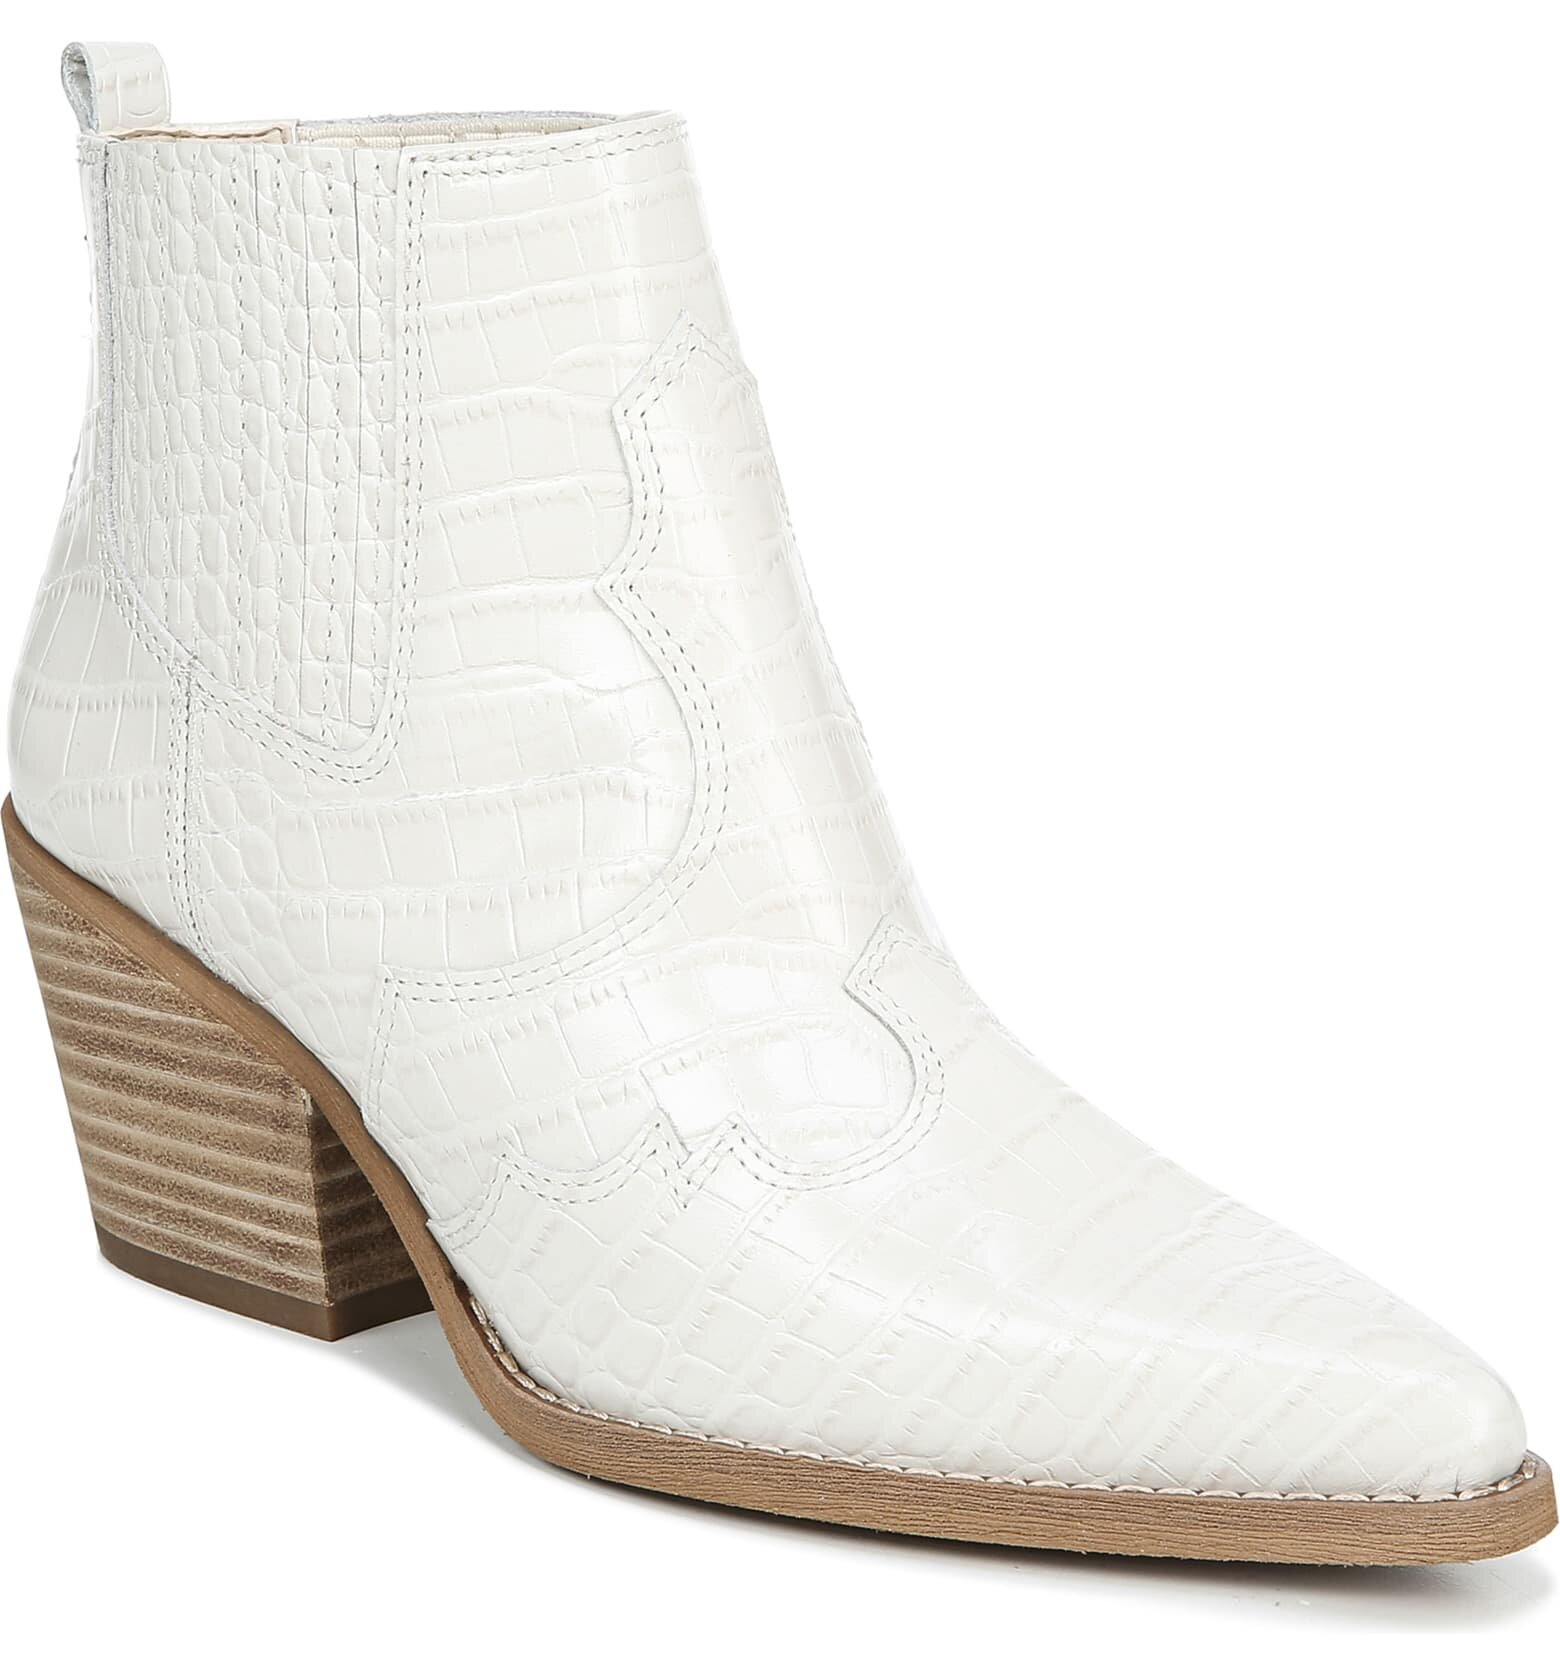 SHOP  Sam Edelman Winona Booties